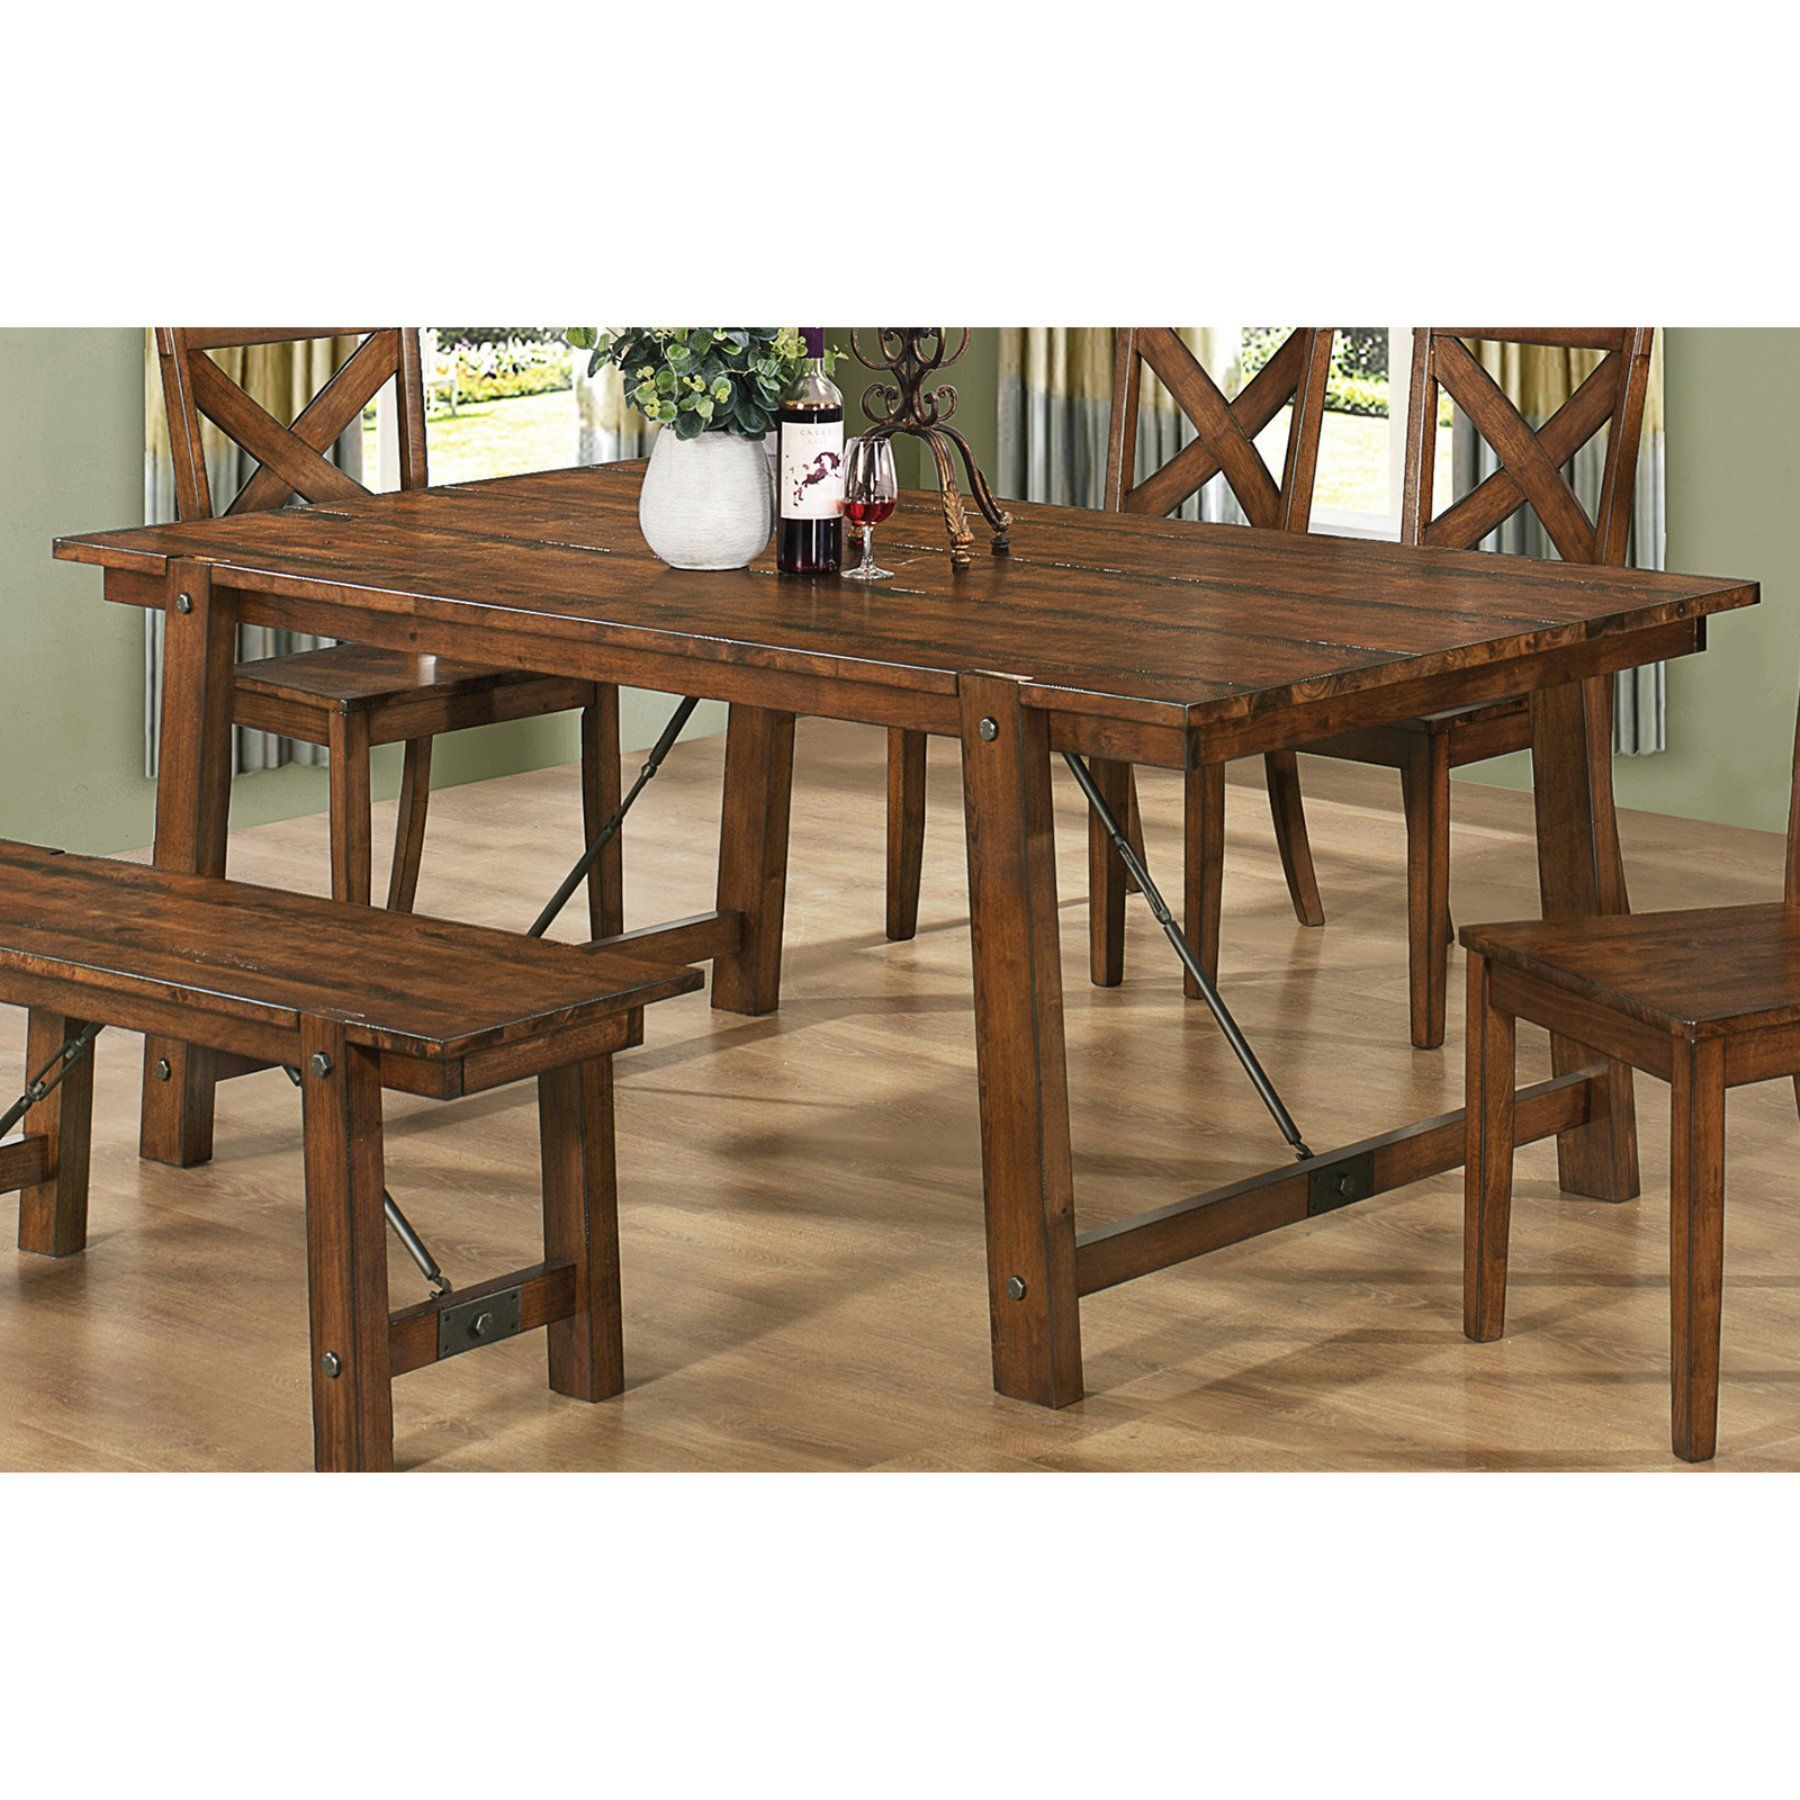 Coaster furniture lawson dining table products